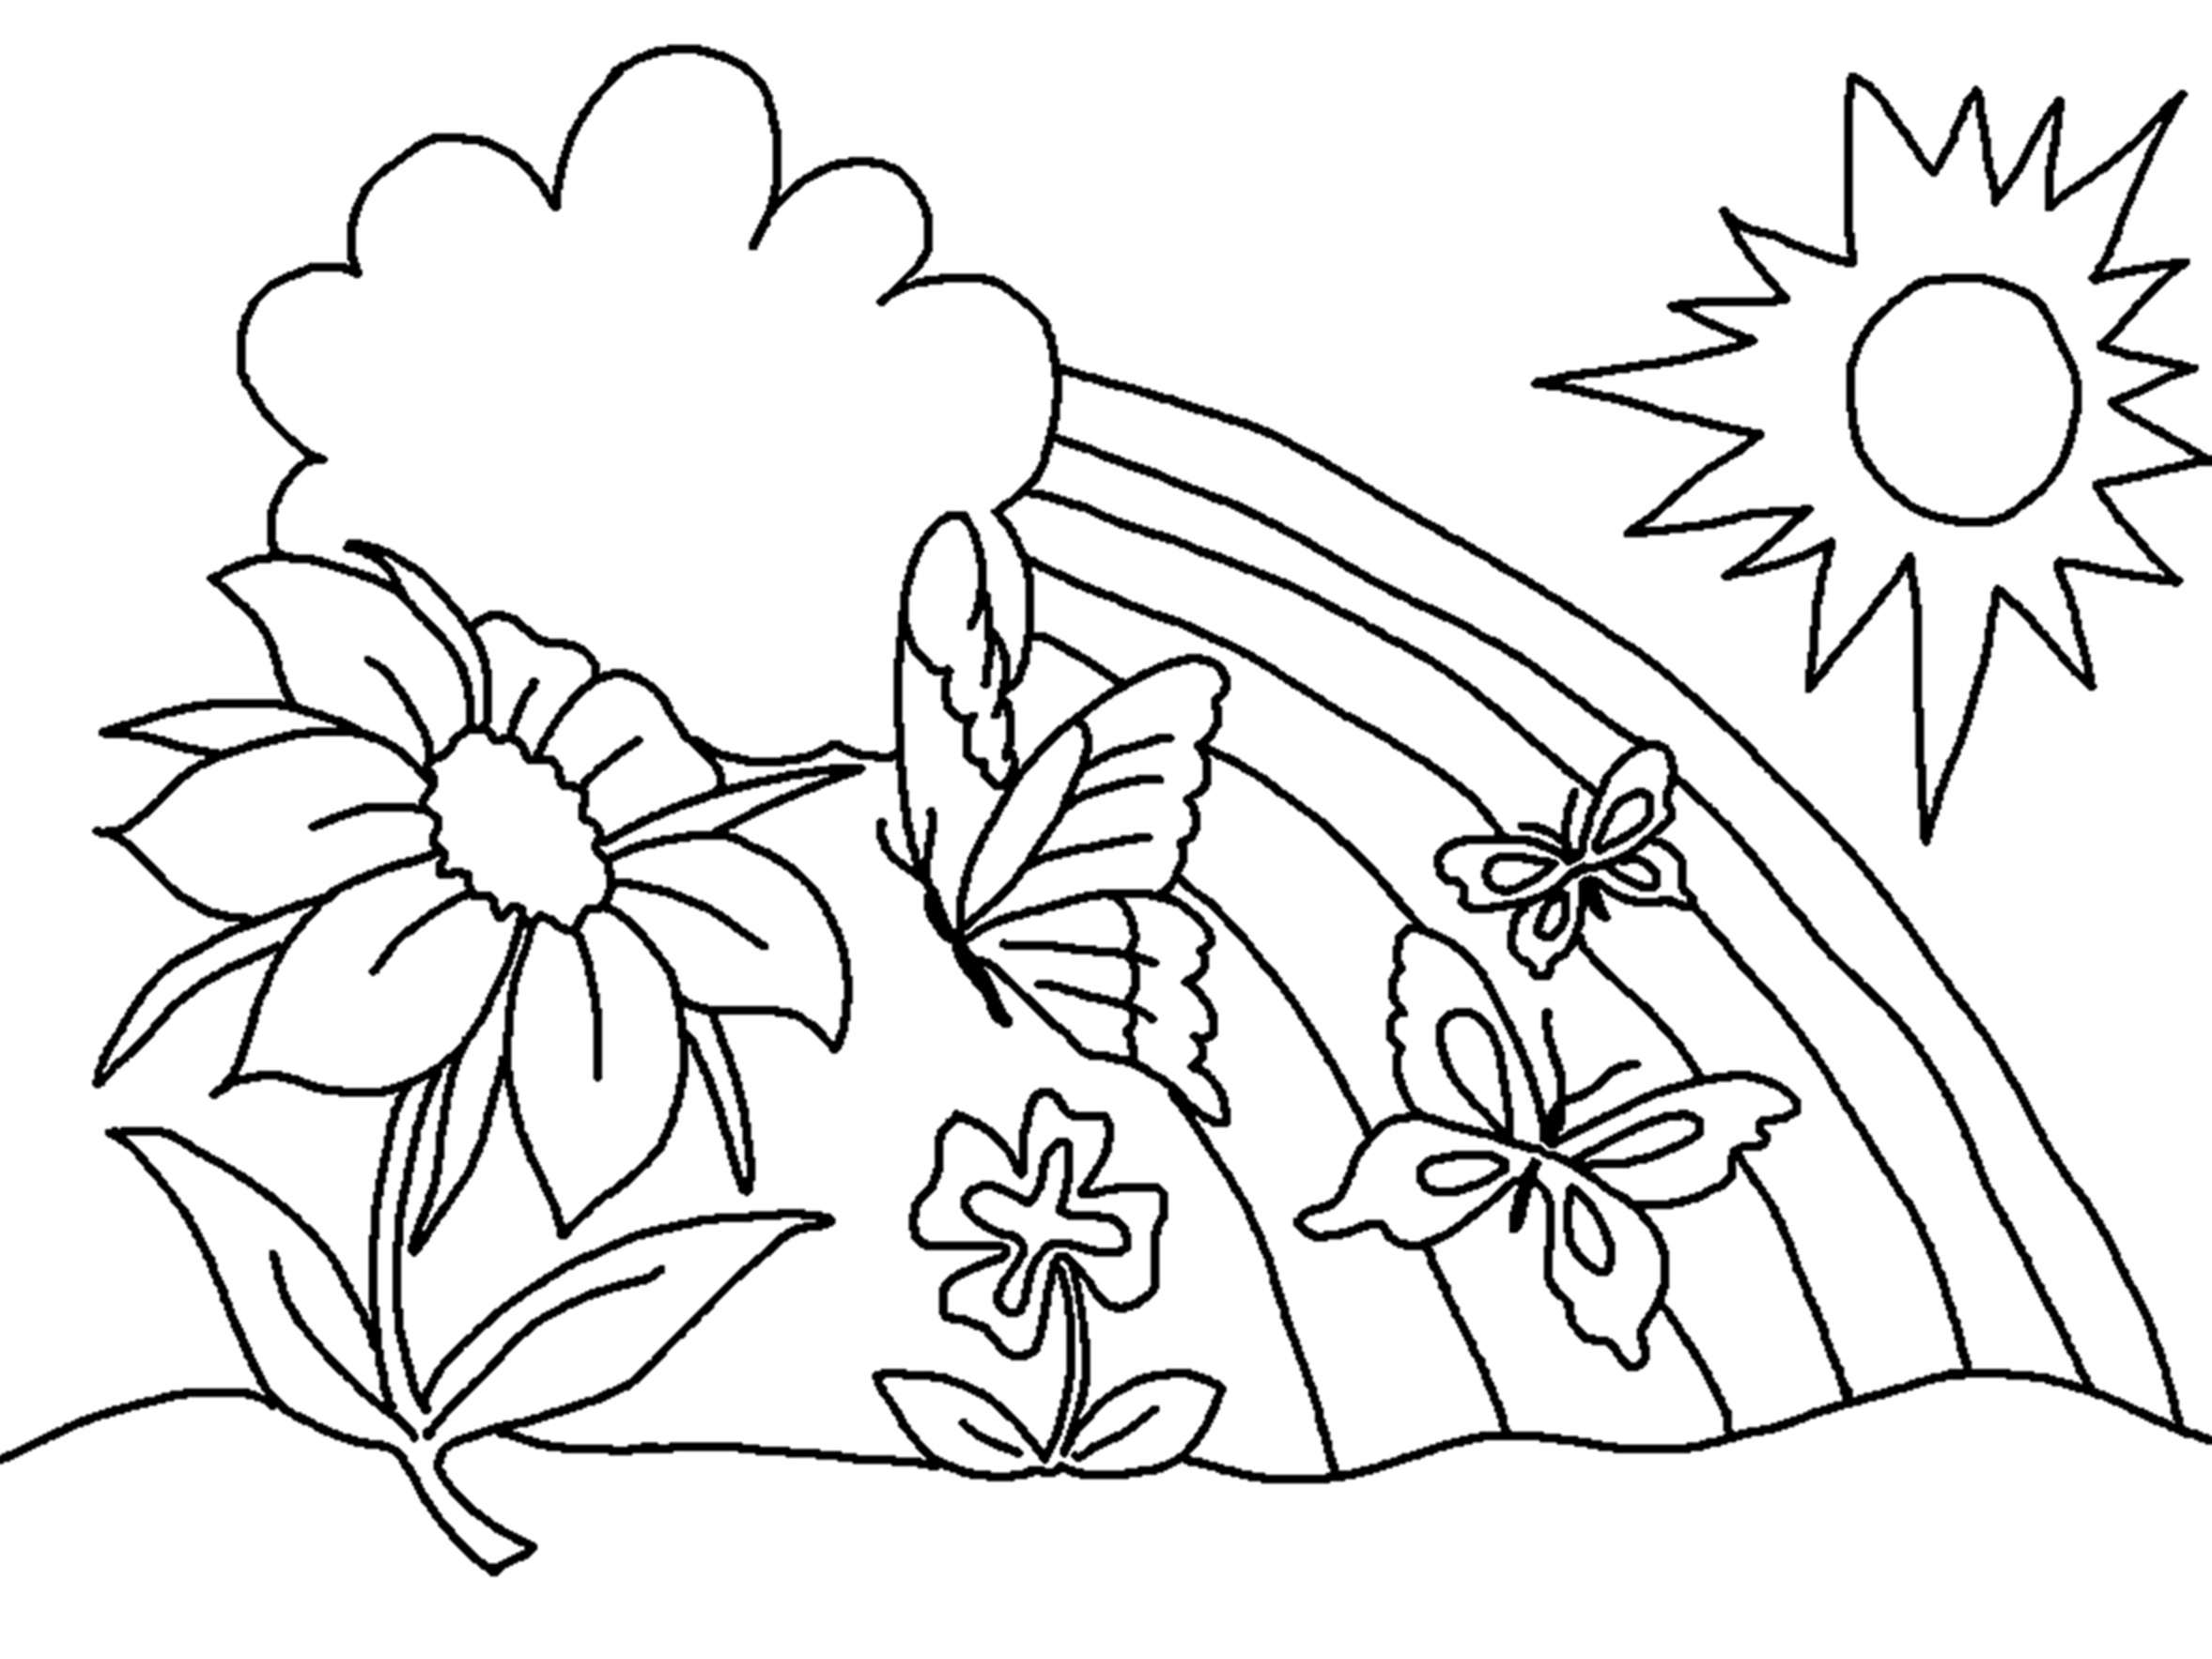 Free Flower Coloring Pages For Kids  Free Printable Flower Coloring Pages For Kids Best